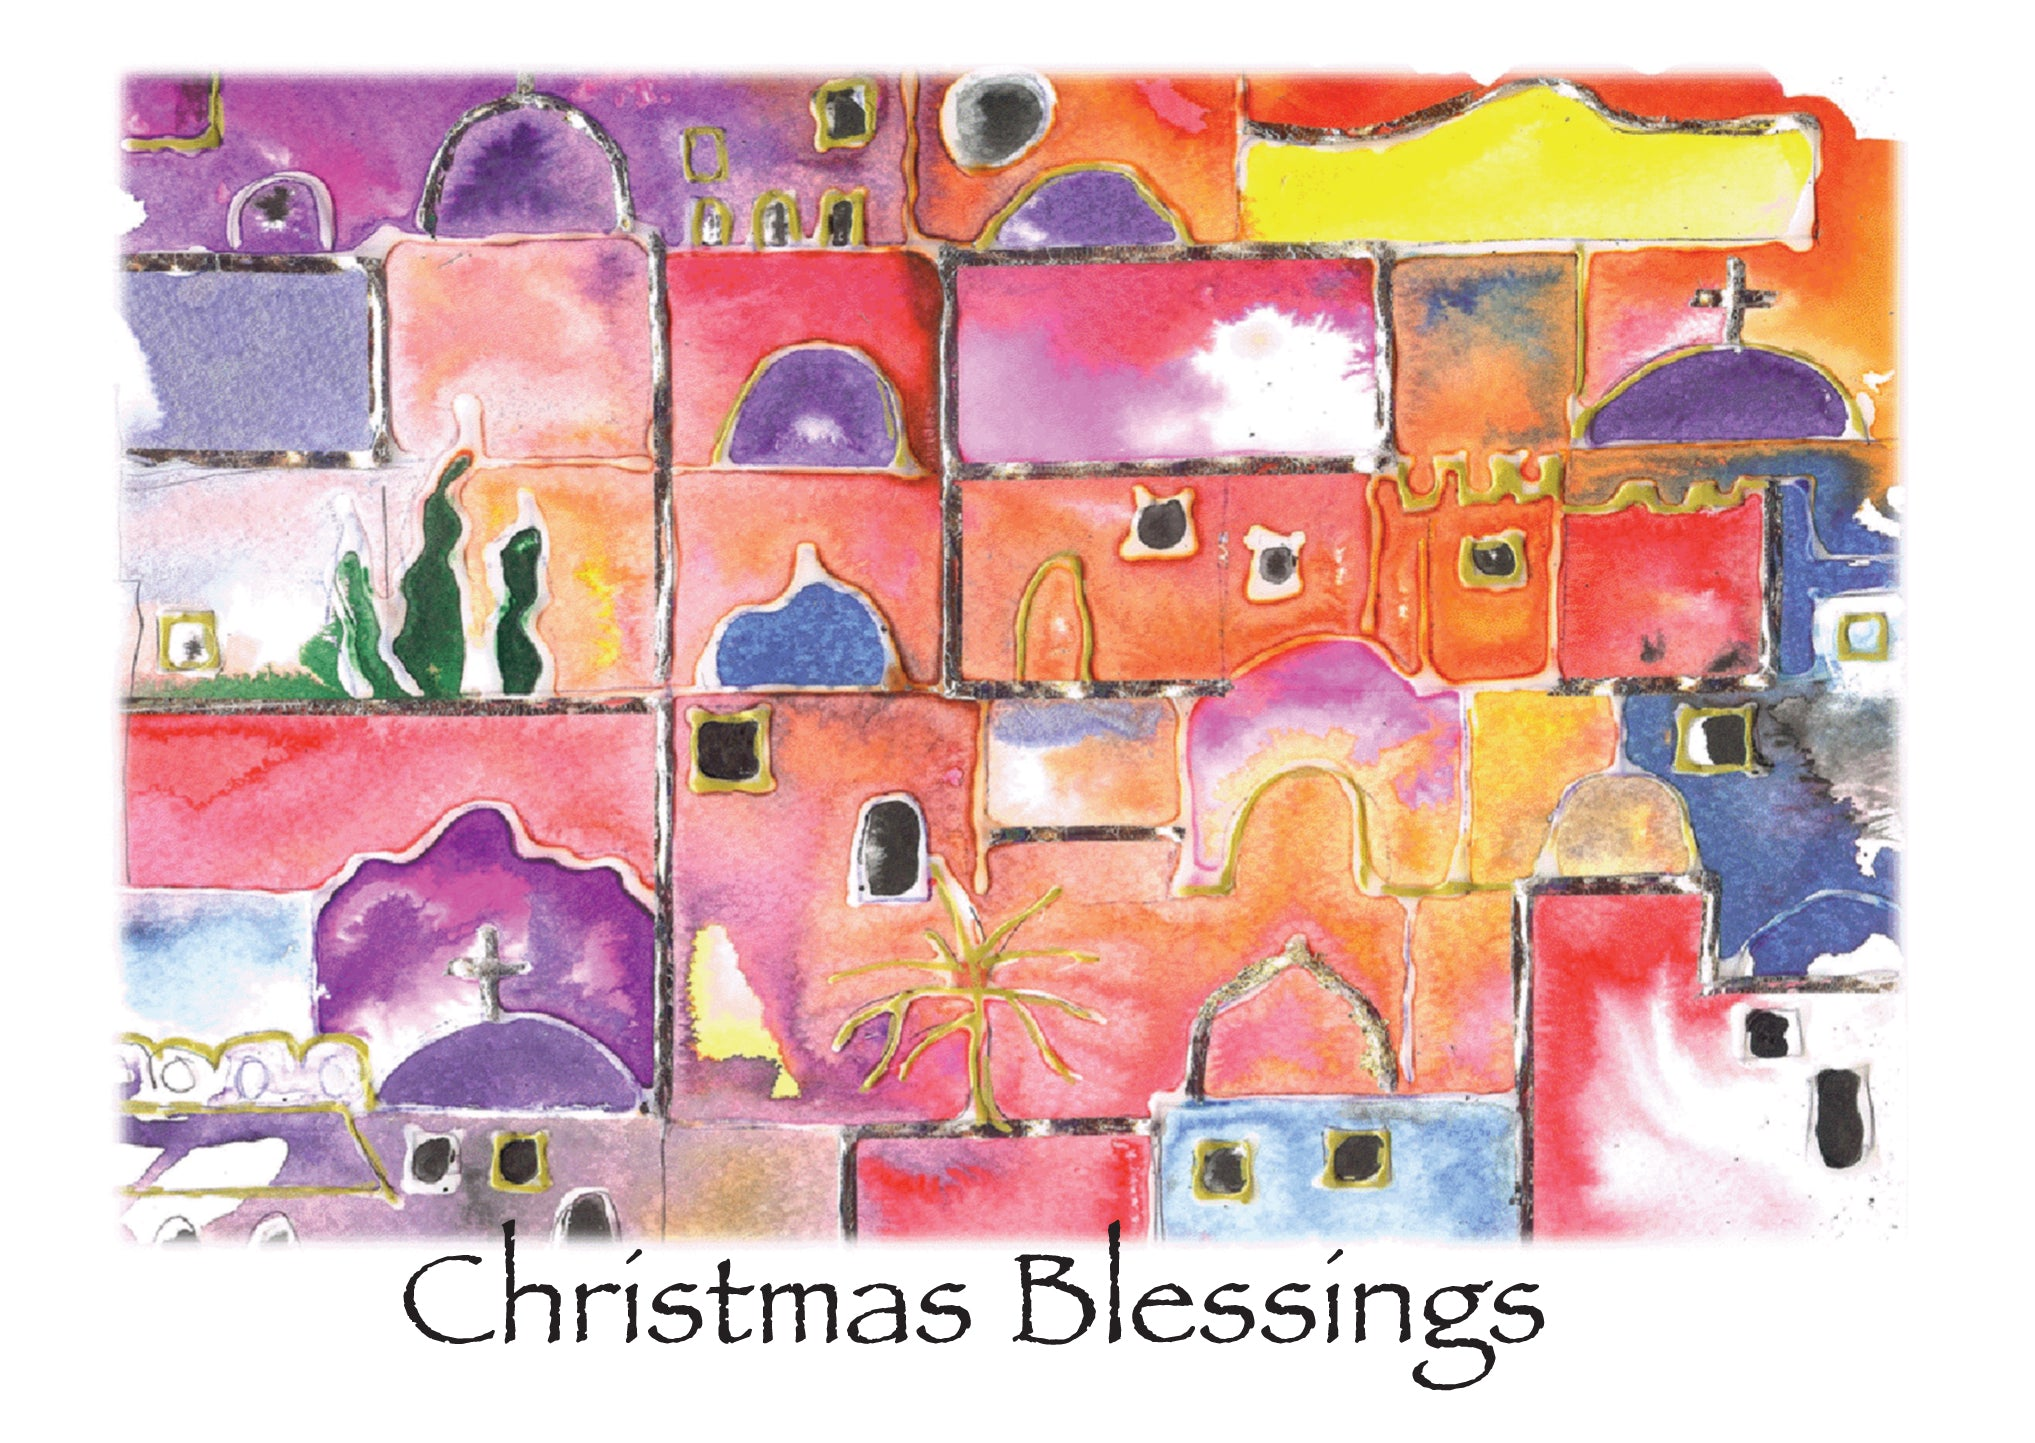 Christmas Blessings - Lesley HollingworthChristmas Blessings - Lesley Hollingworth